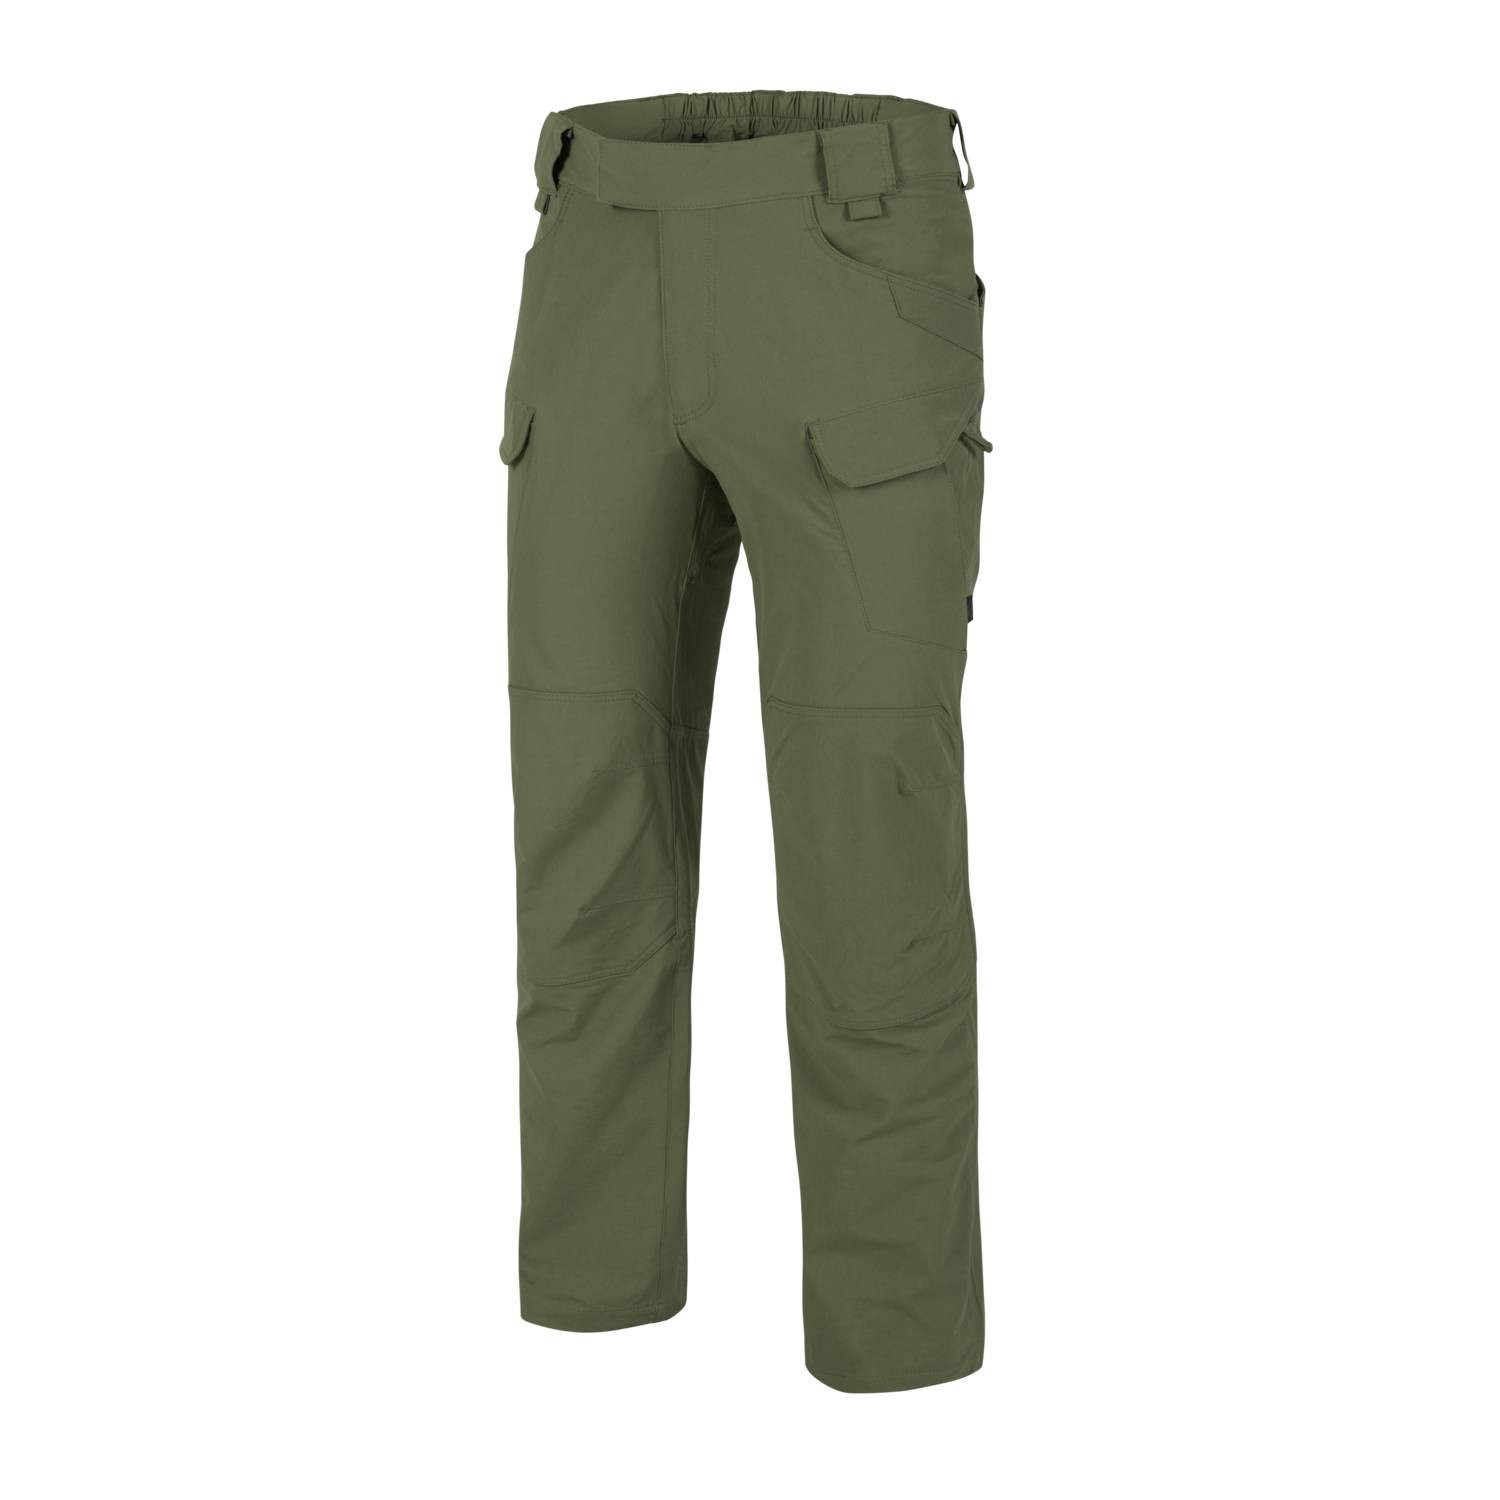 Nohavice OUTDOOR TACTICAL® softshell OLIVE GREEN